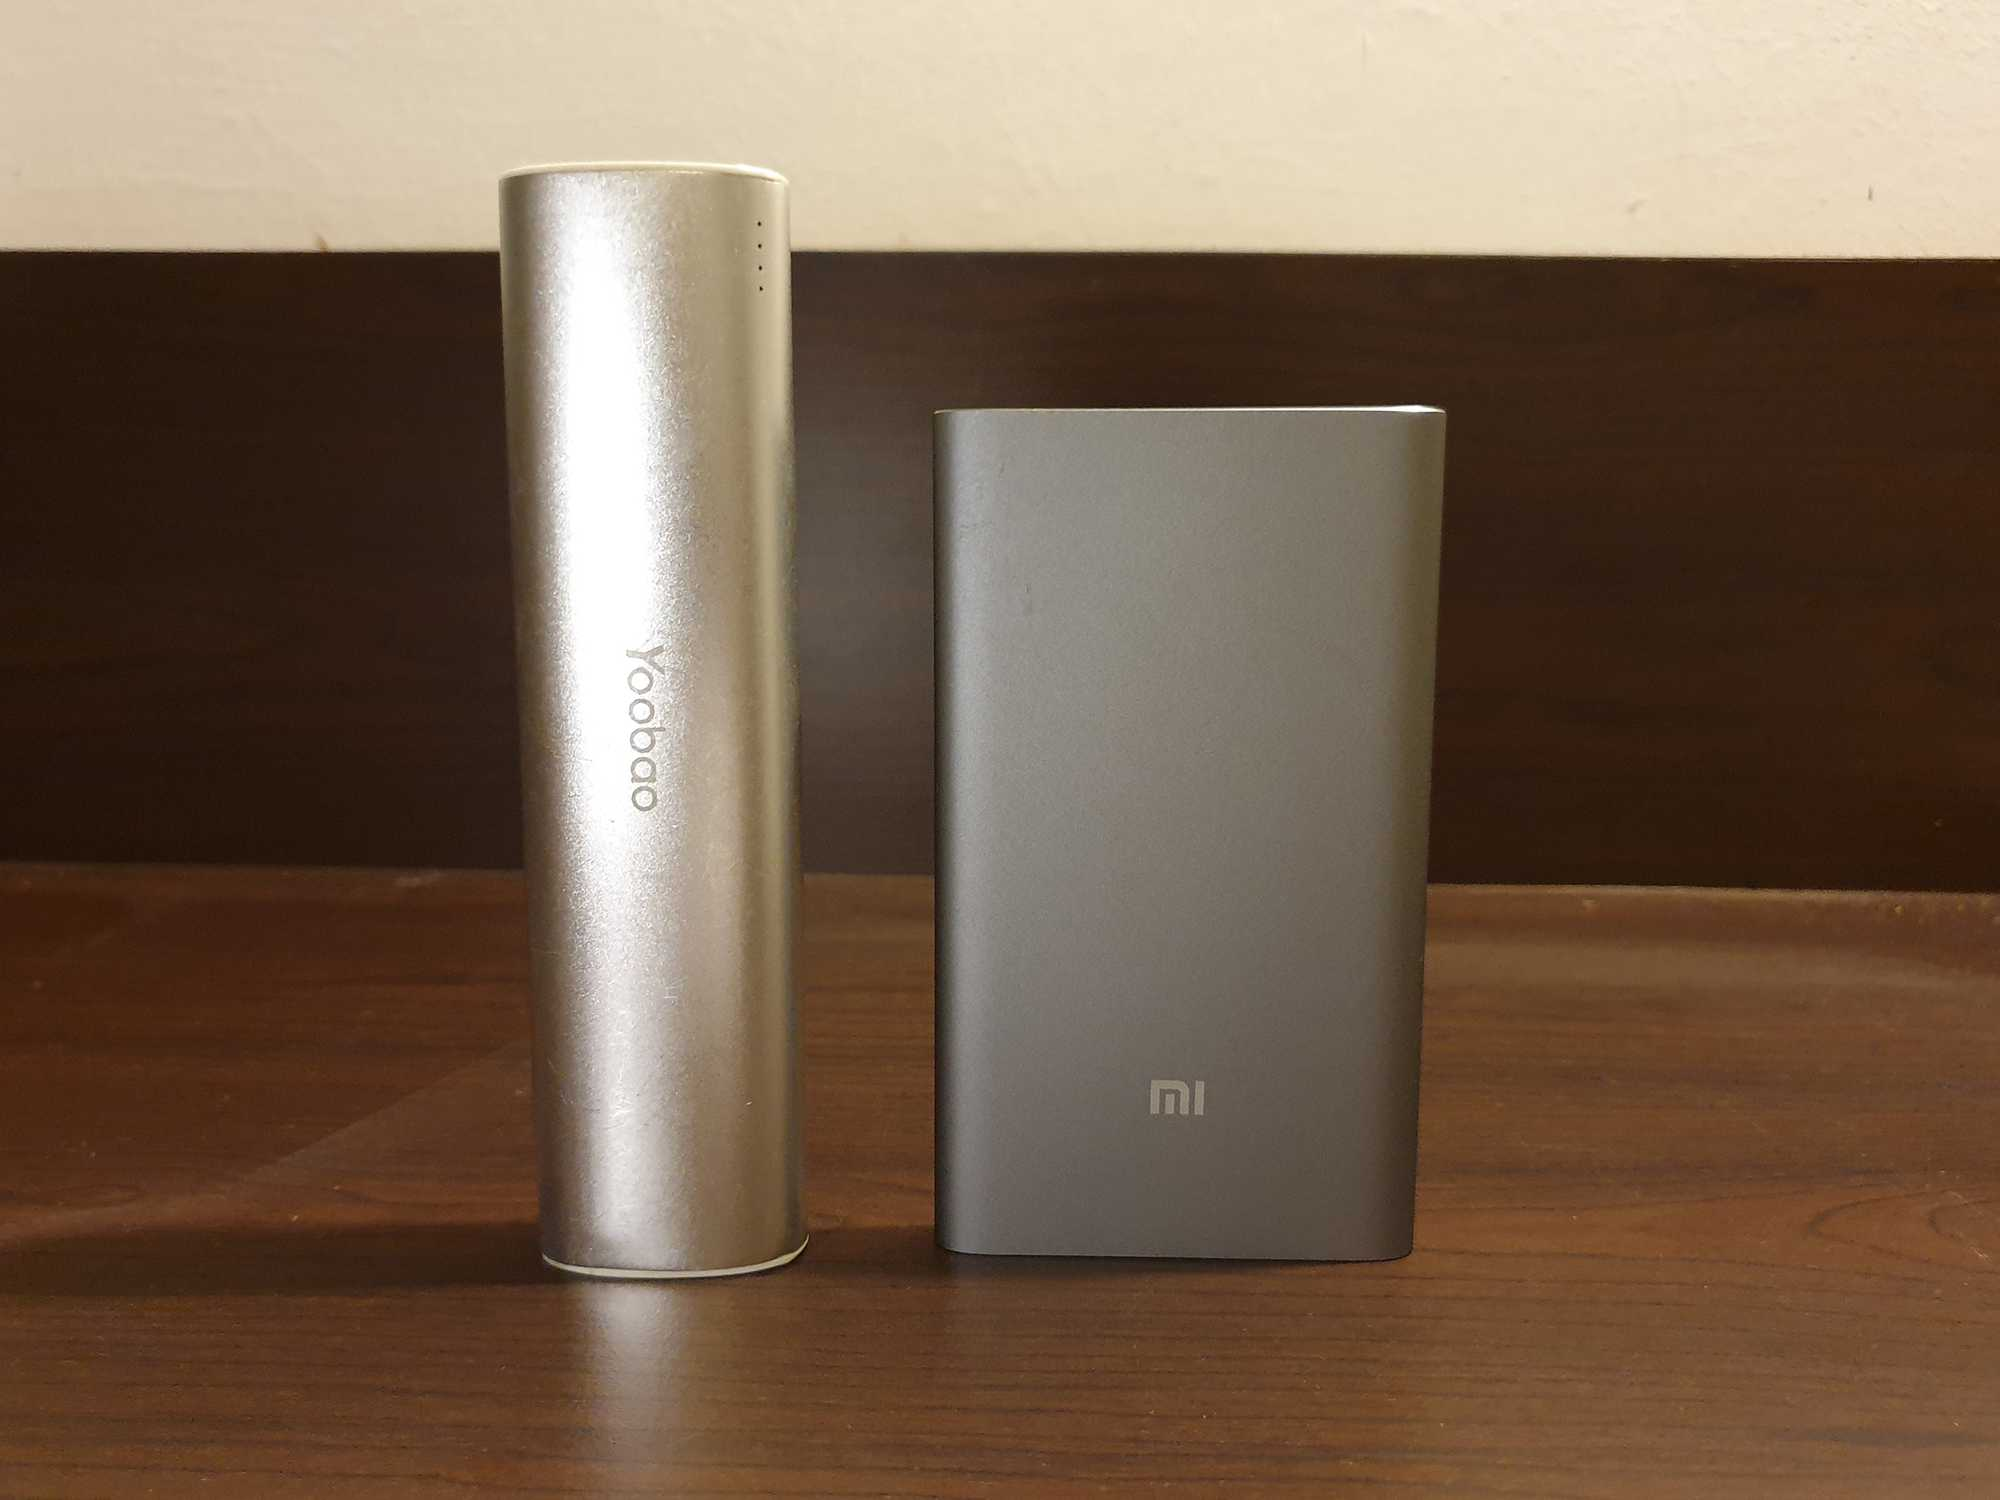 Power Bank Size Compare